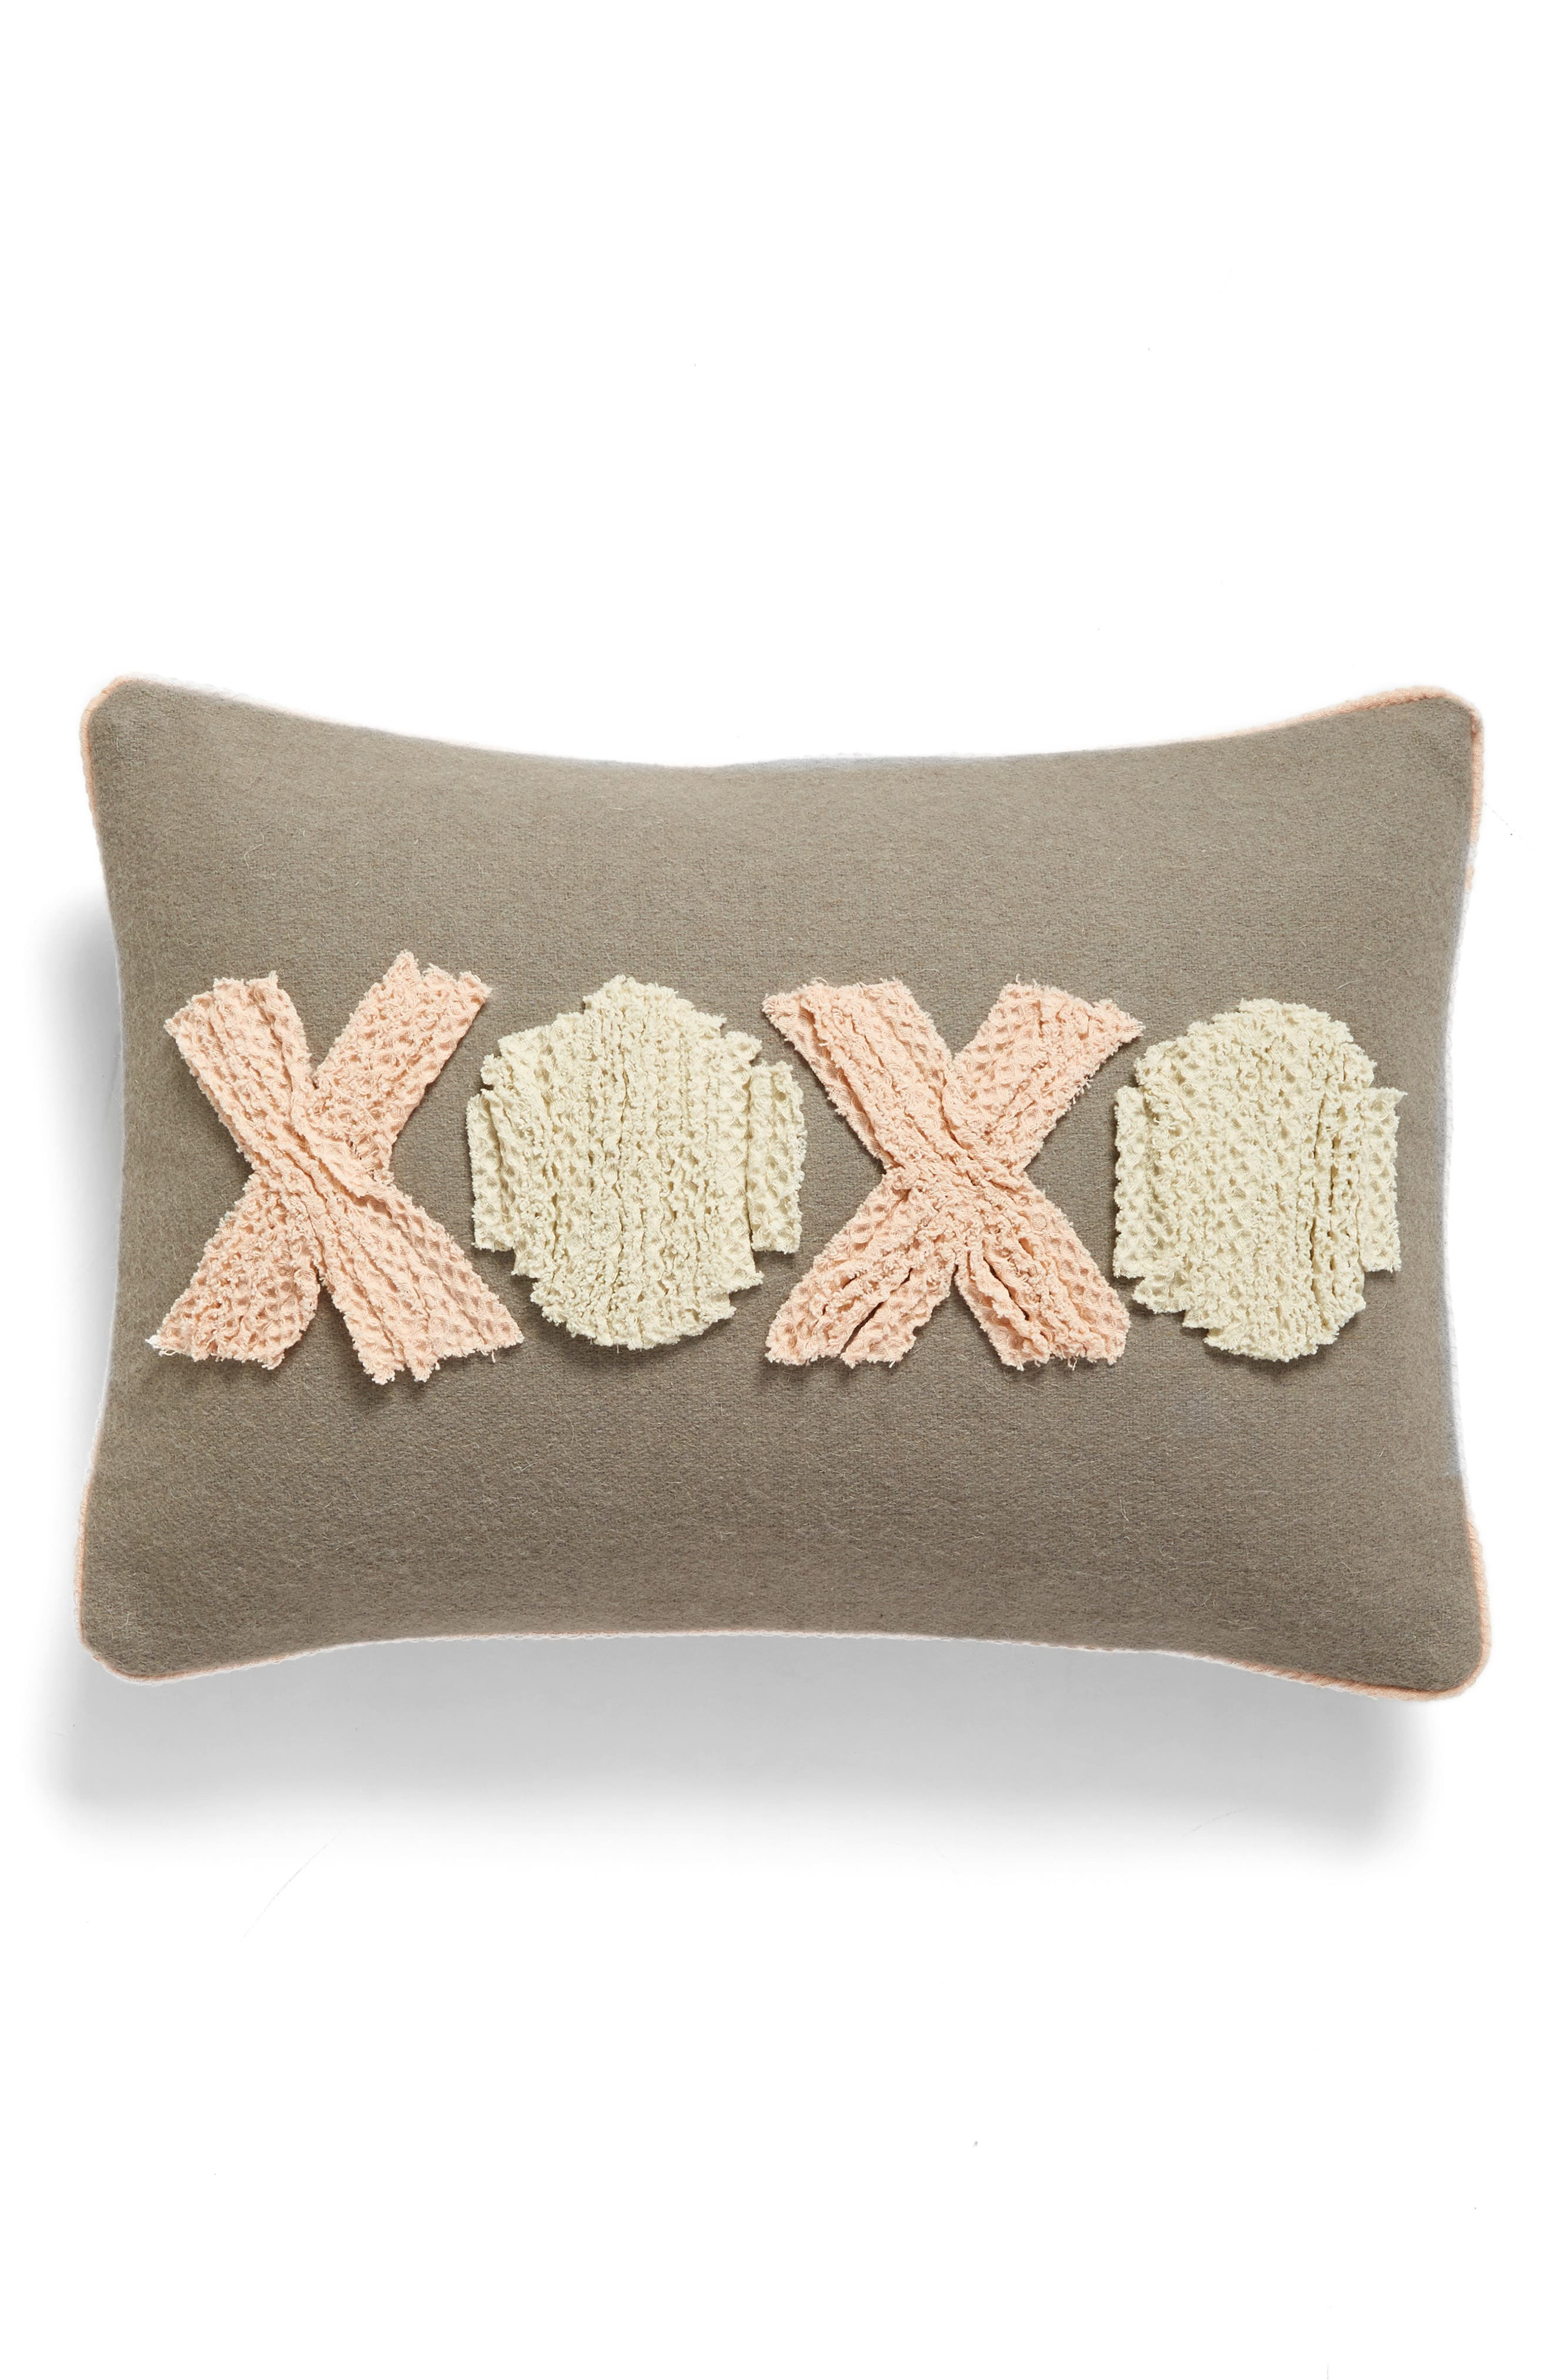 XOXO Accent Pillow,                             Main thumbnail 1, color,                             Grey Heather Multi